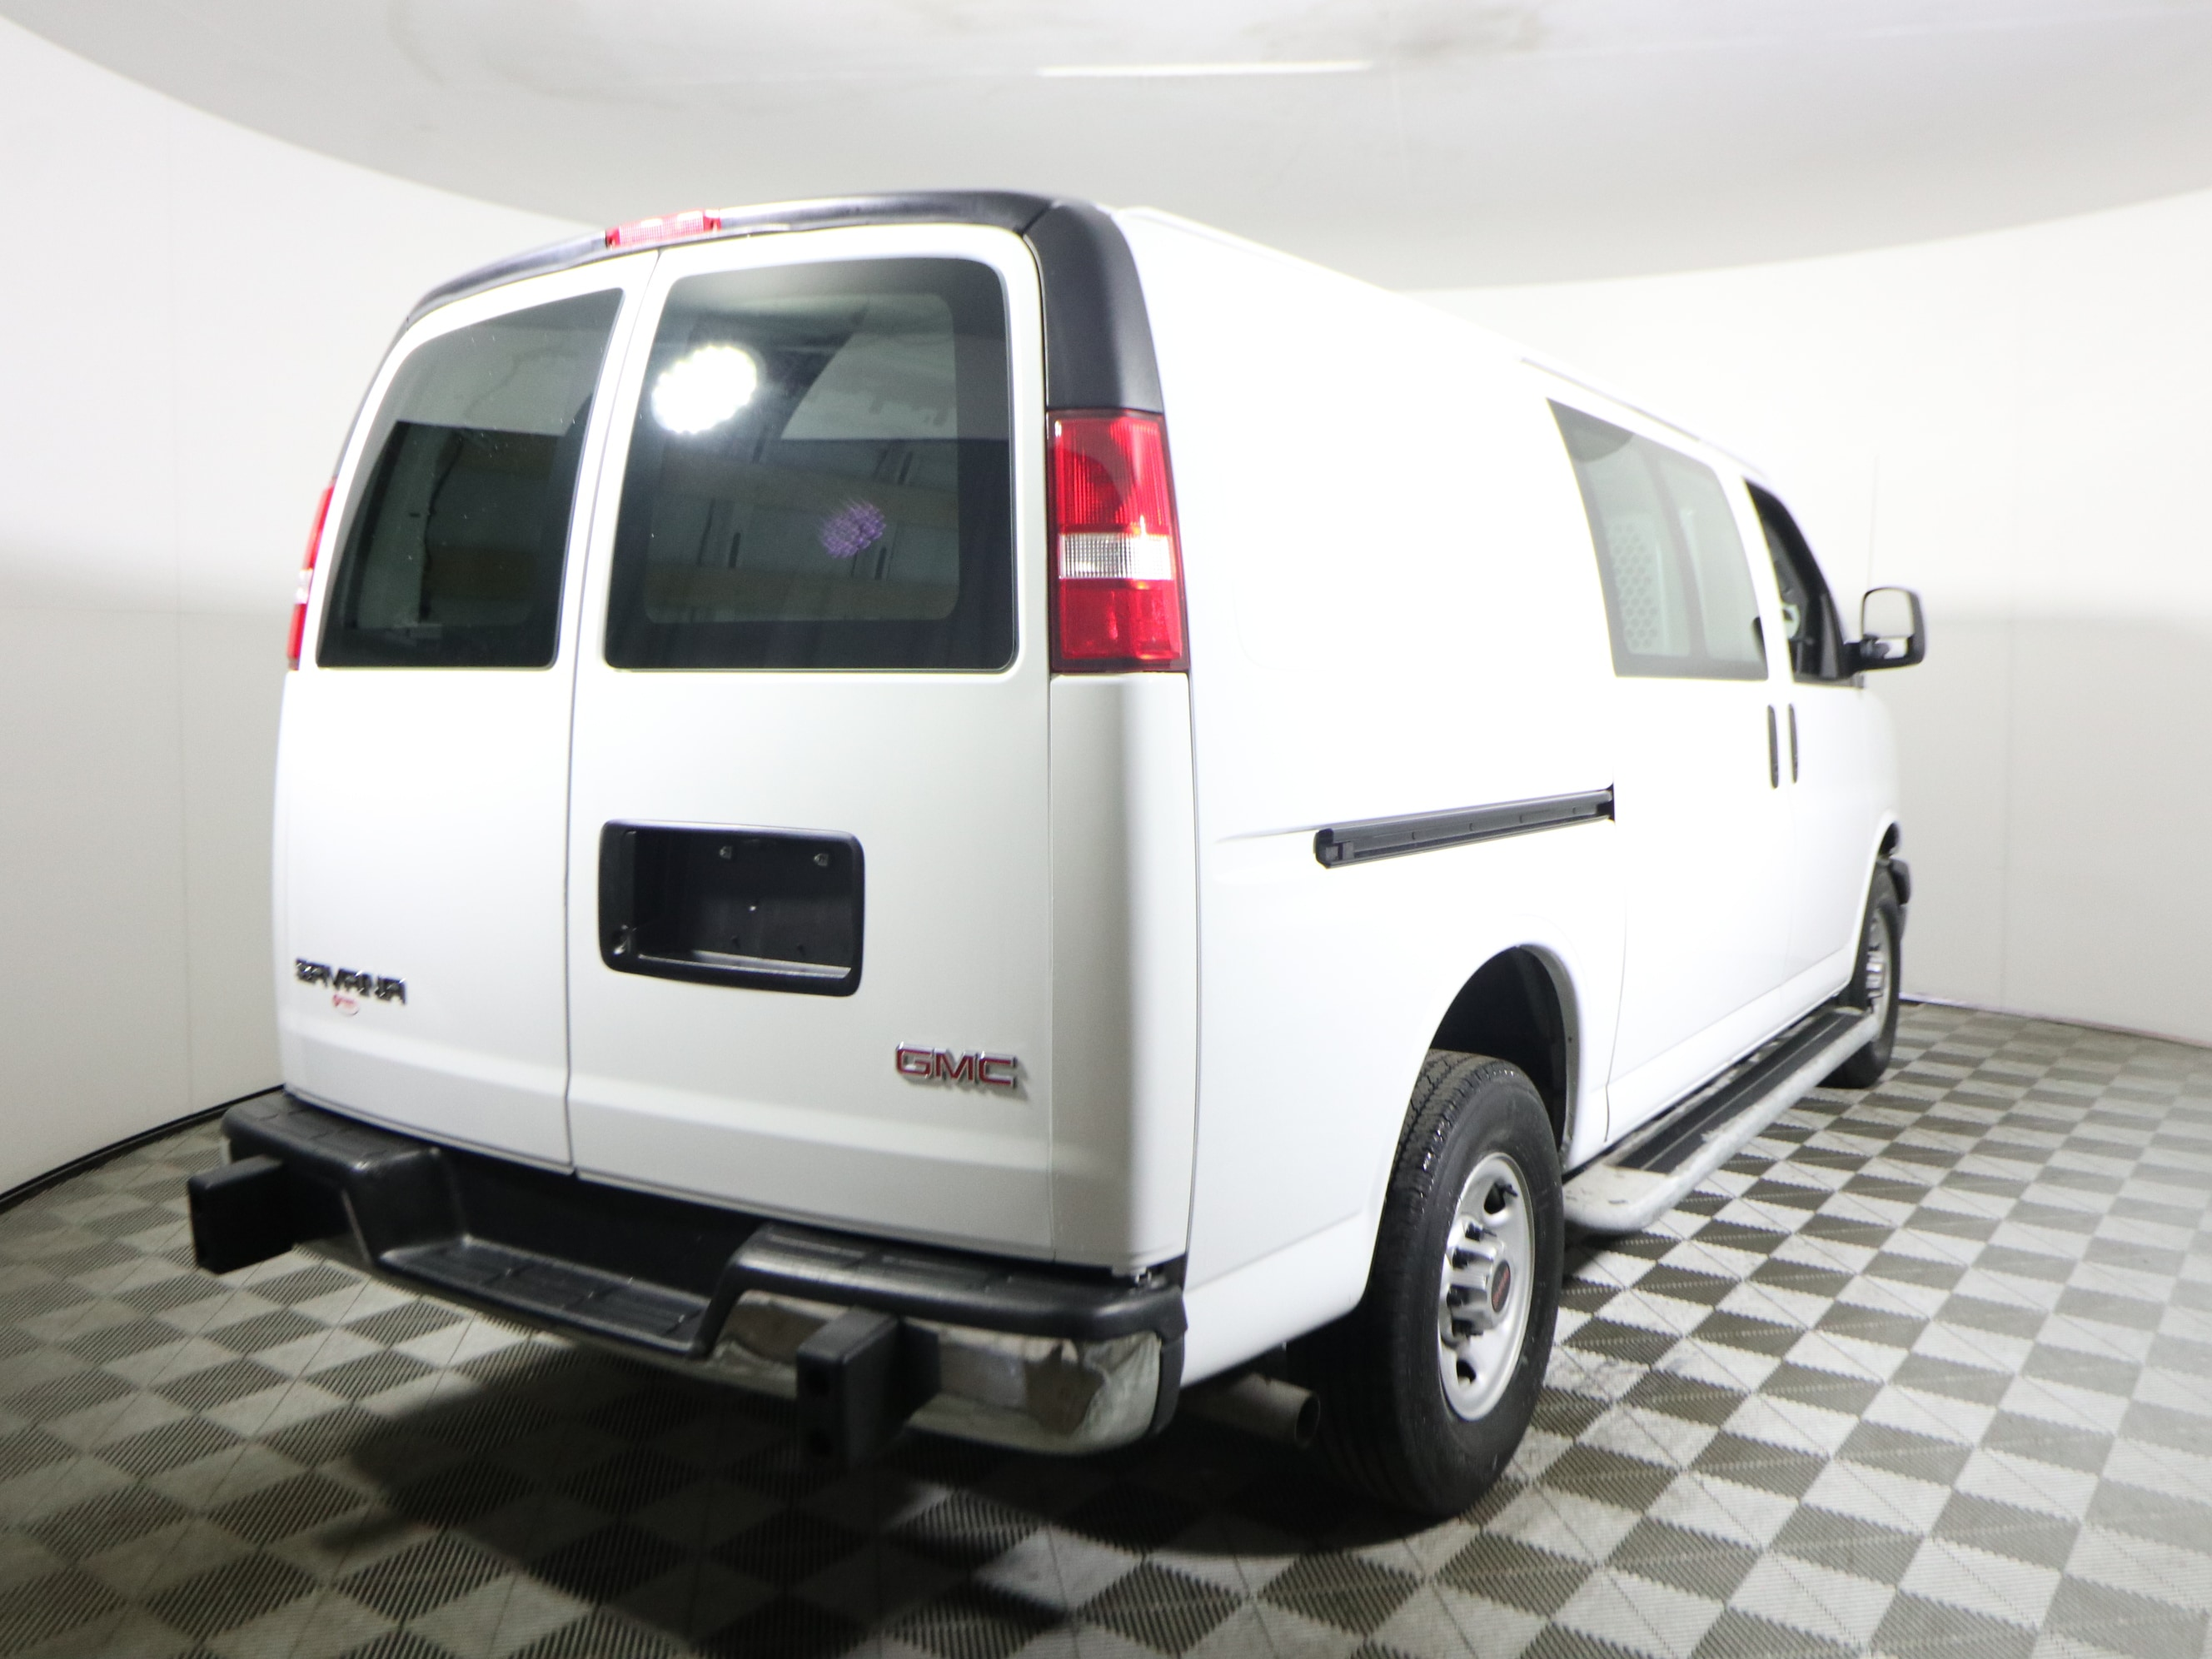 2017 GMC Savana Cargo Van - Fair Car Ownership